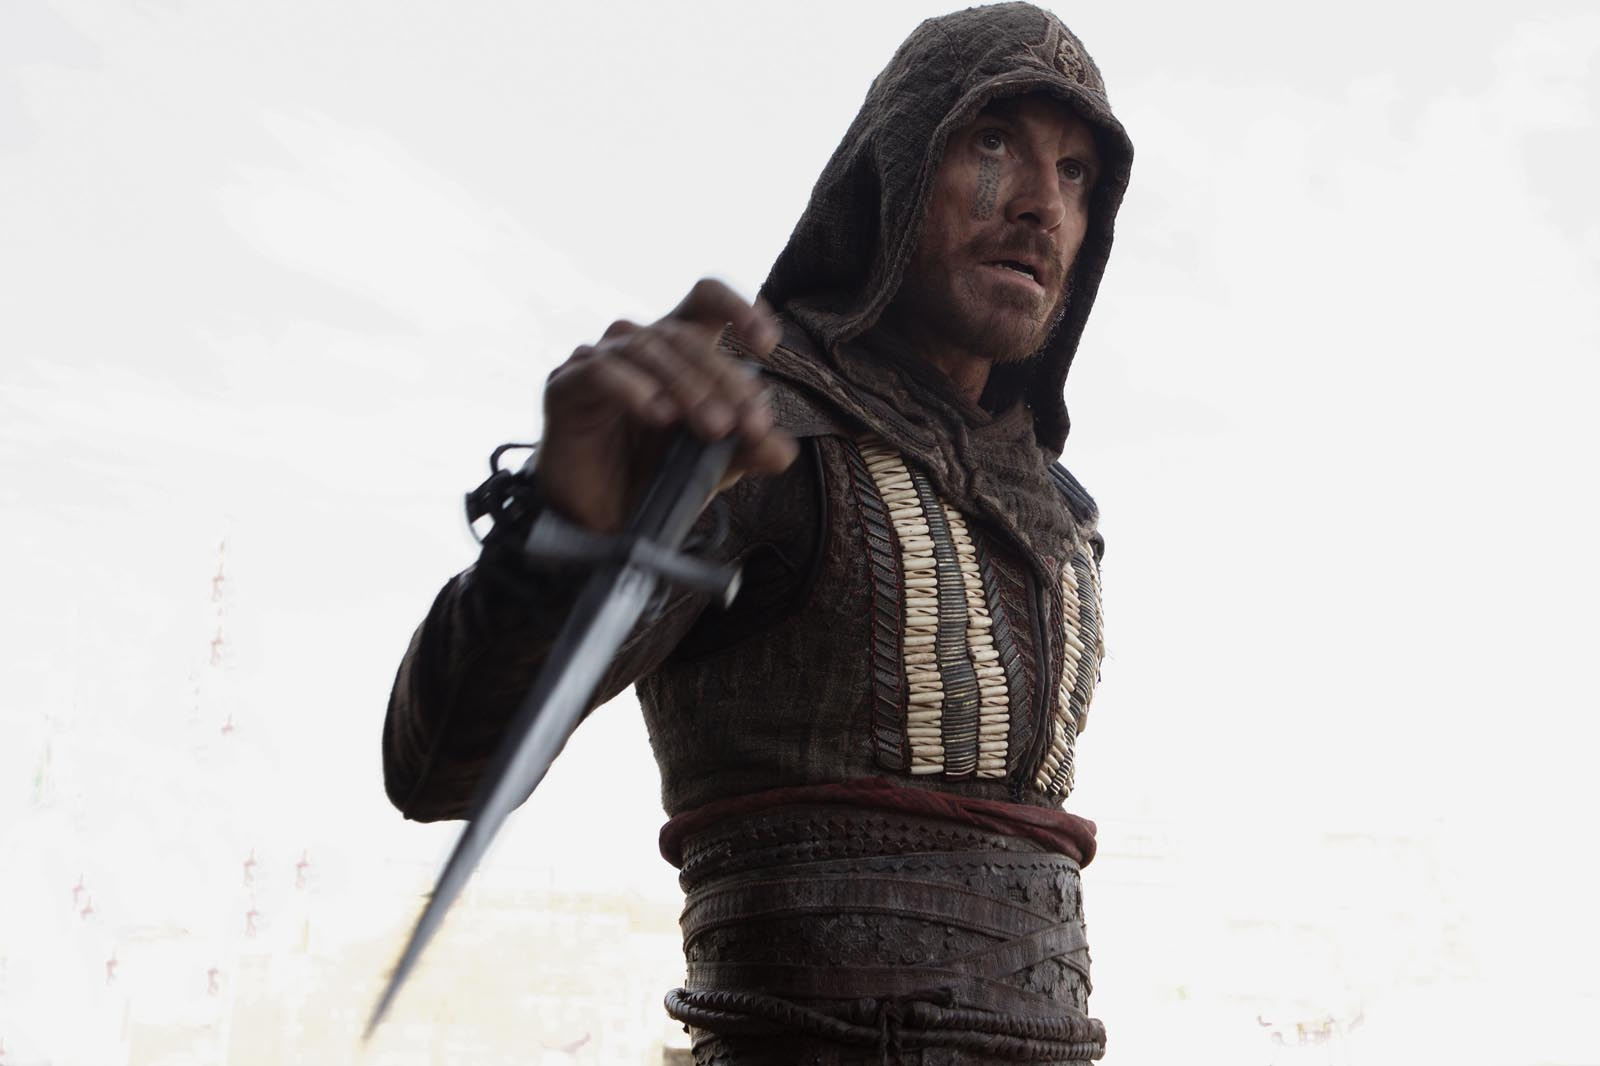 michael fassbinder assassins creed action images 2016 movie 1600×1066